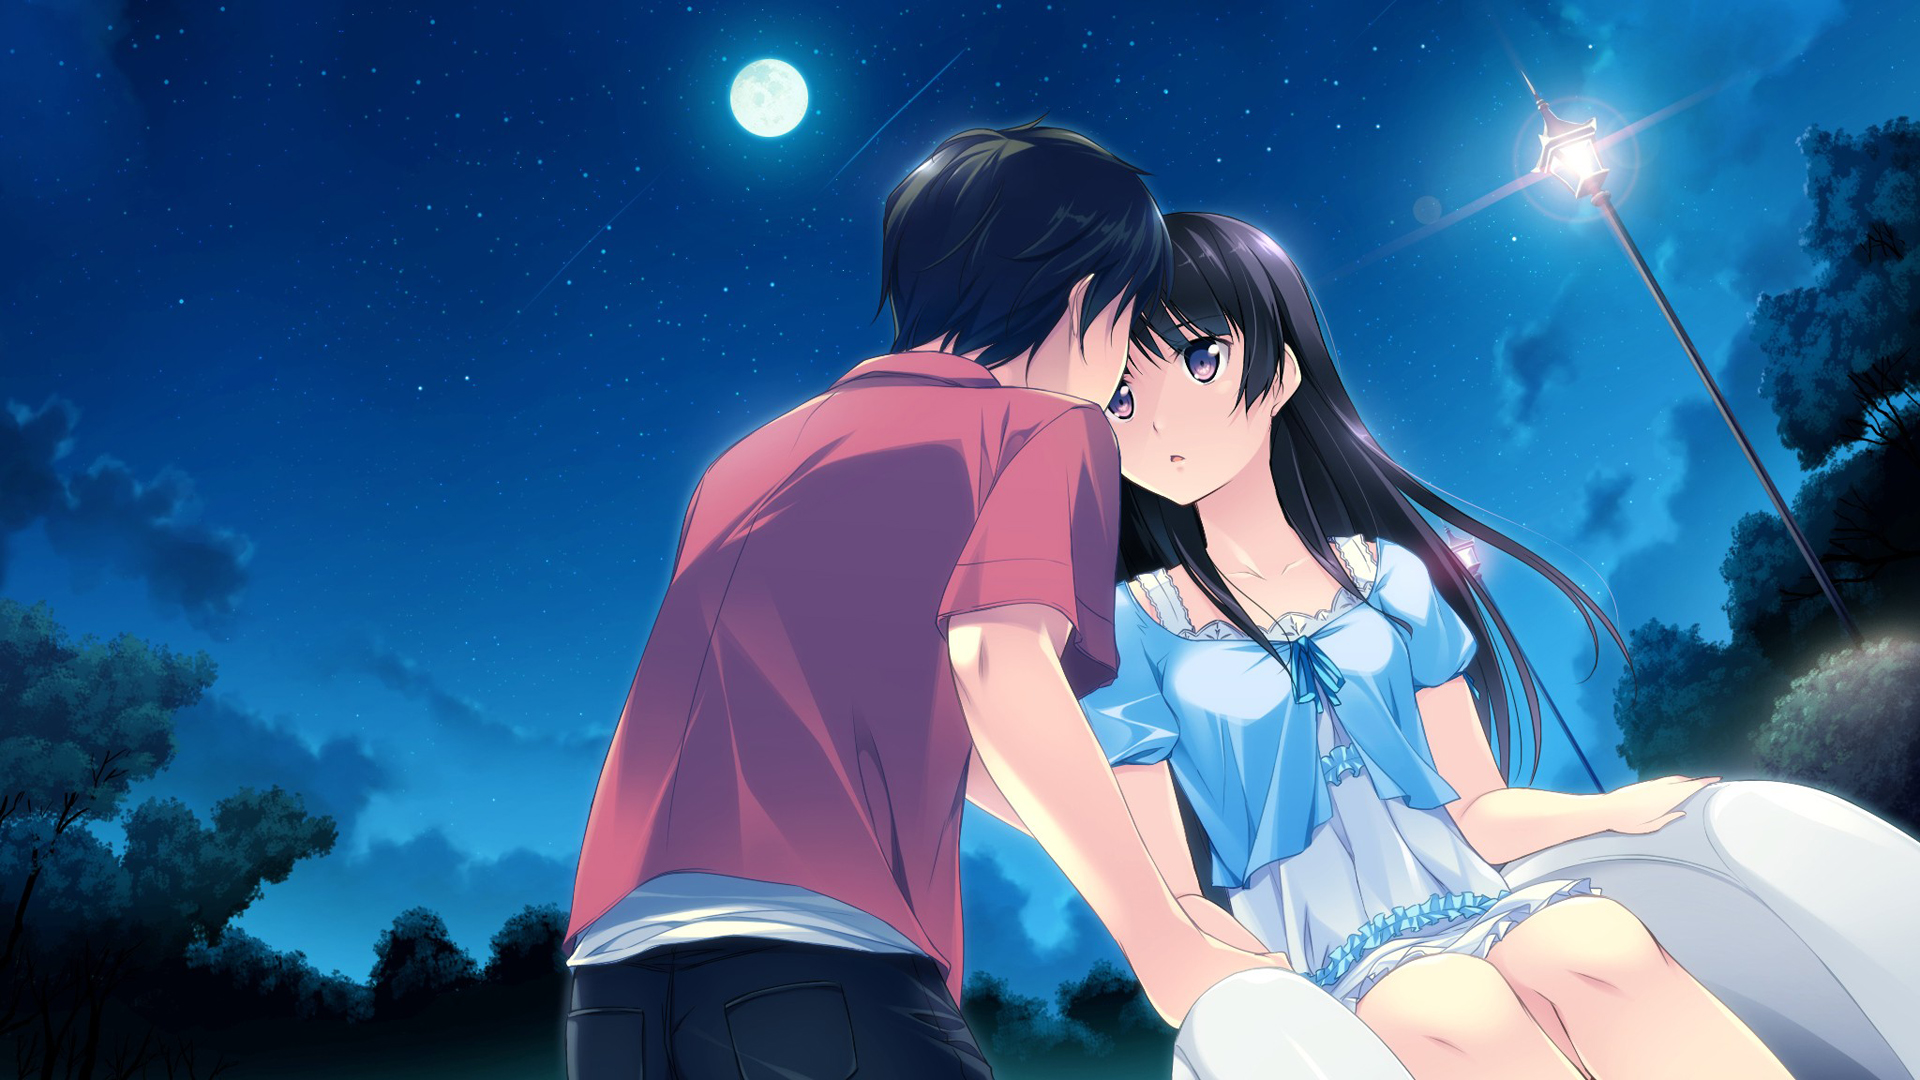 image - anime-wallpaperdownload-valentines-anime-wallpaper-1920x1080